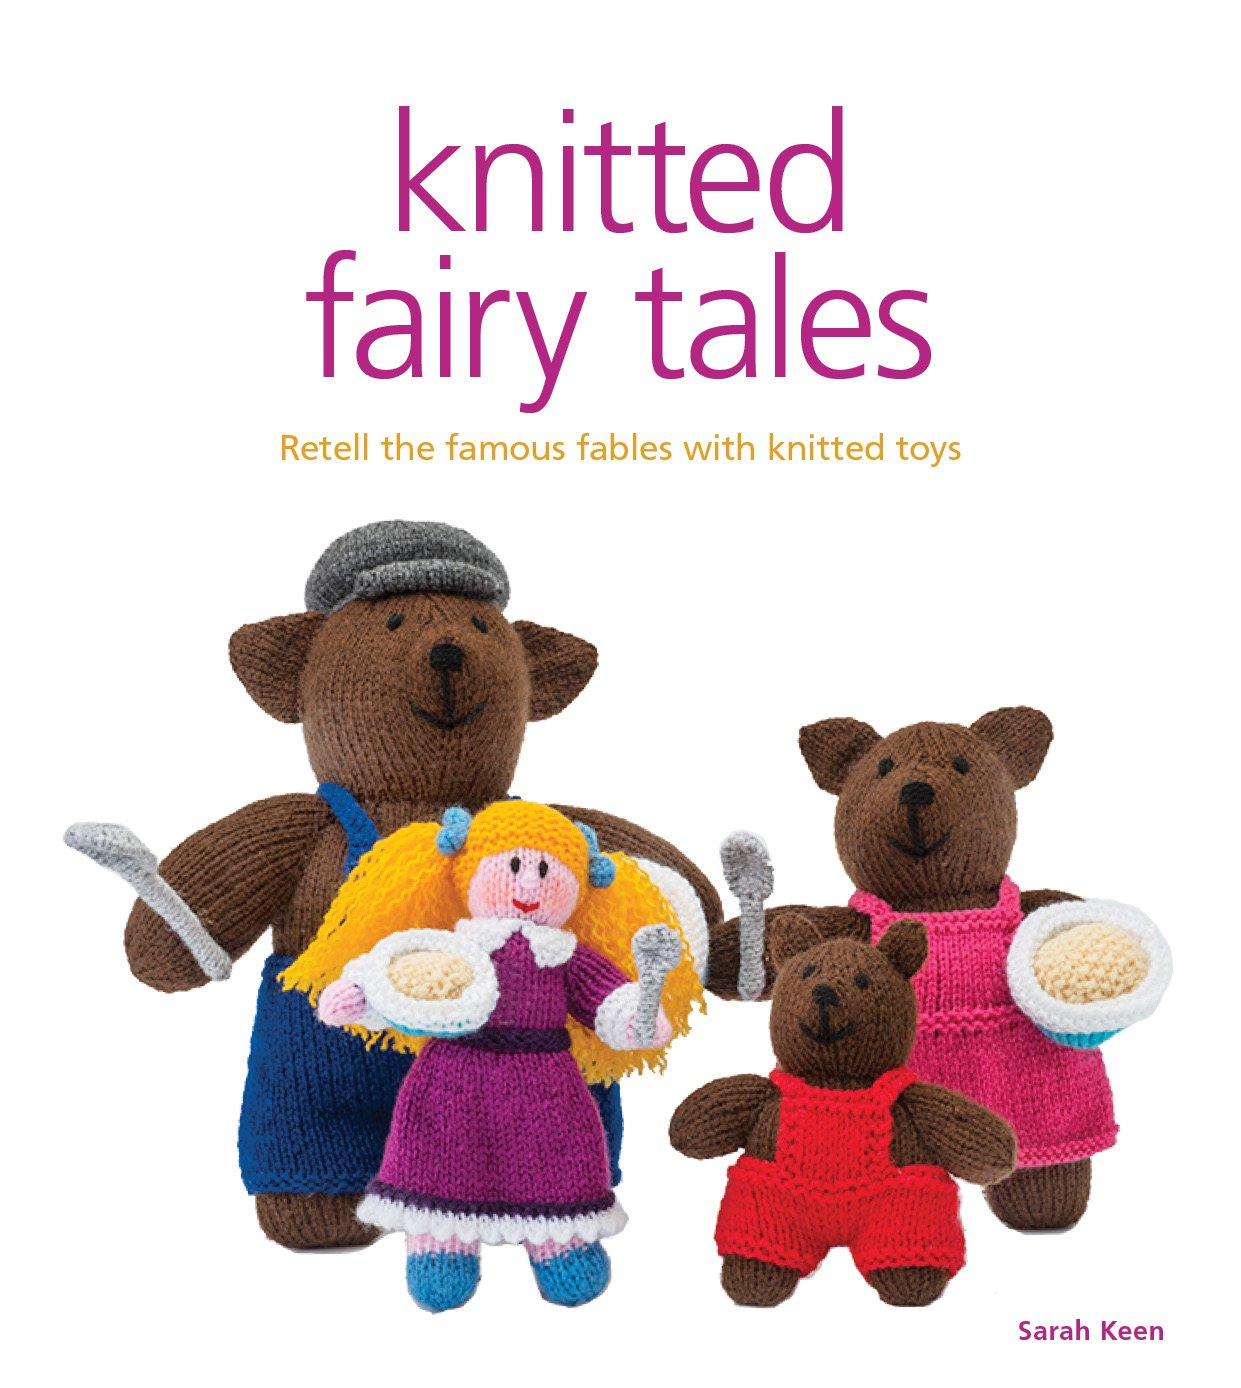 knitted-fairy-tales-retell-the-famous-fables-with-kntted-toys